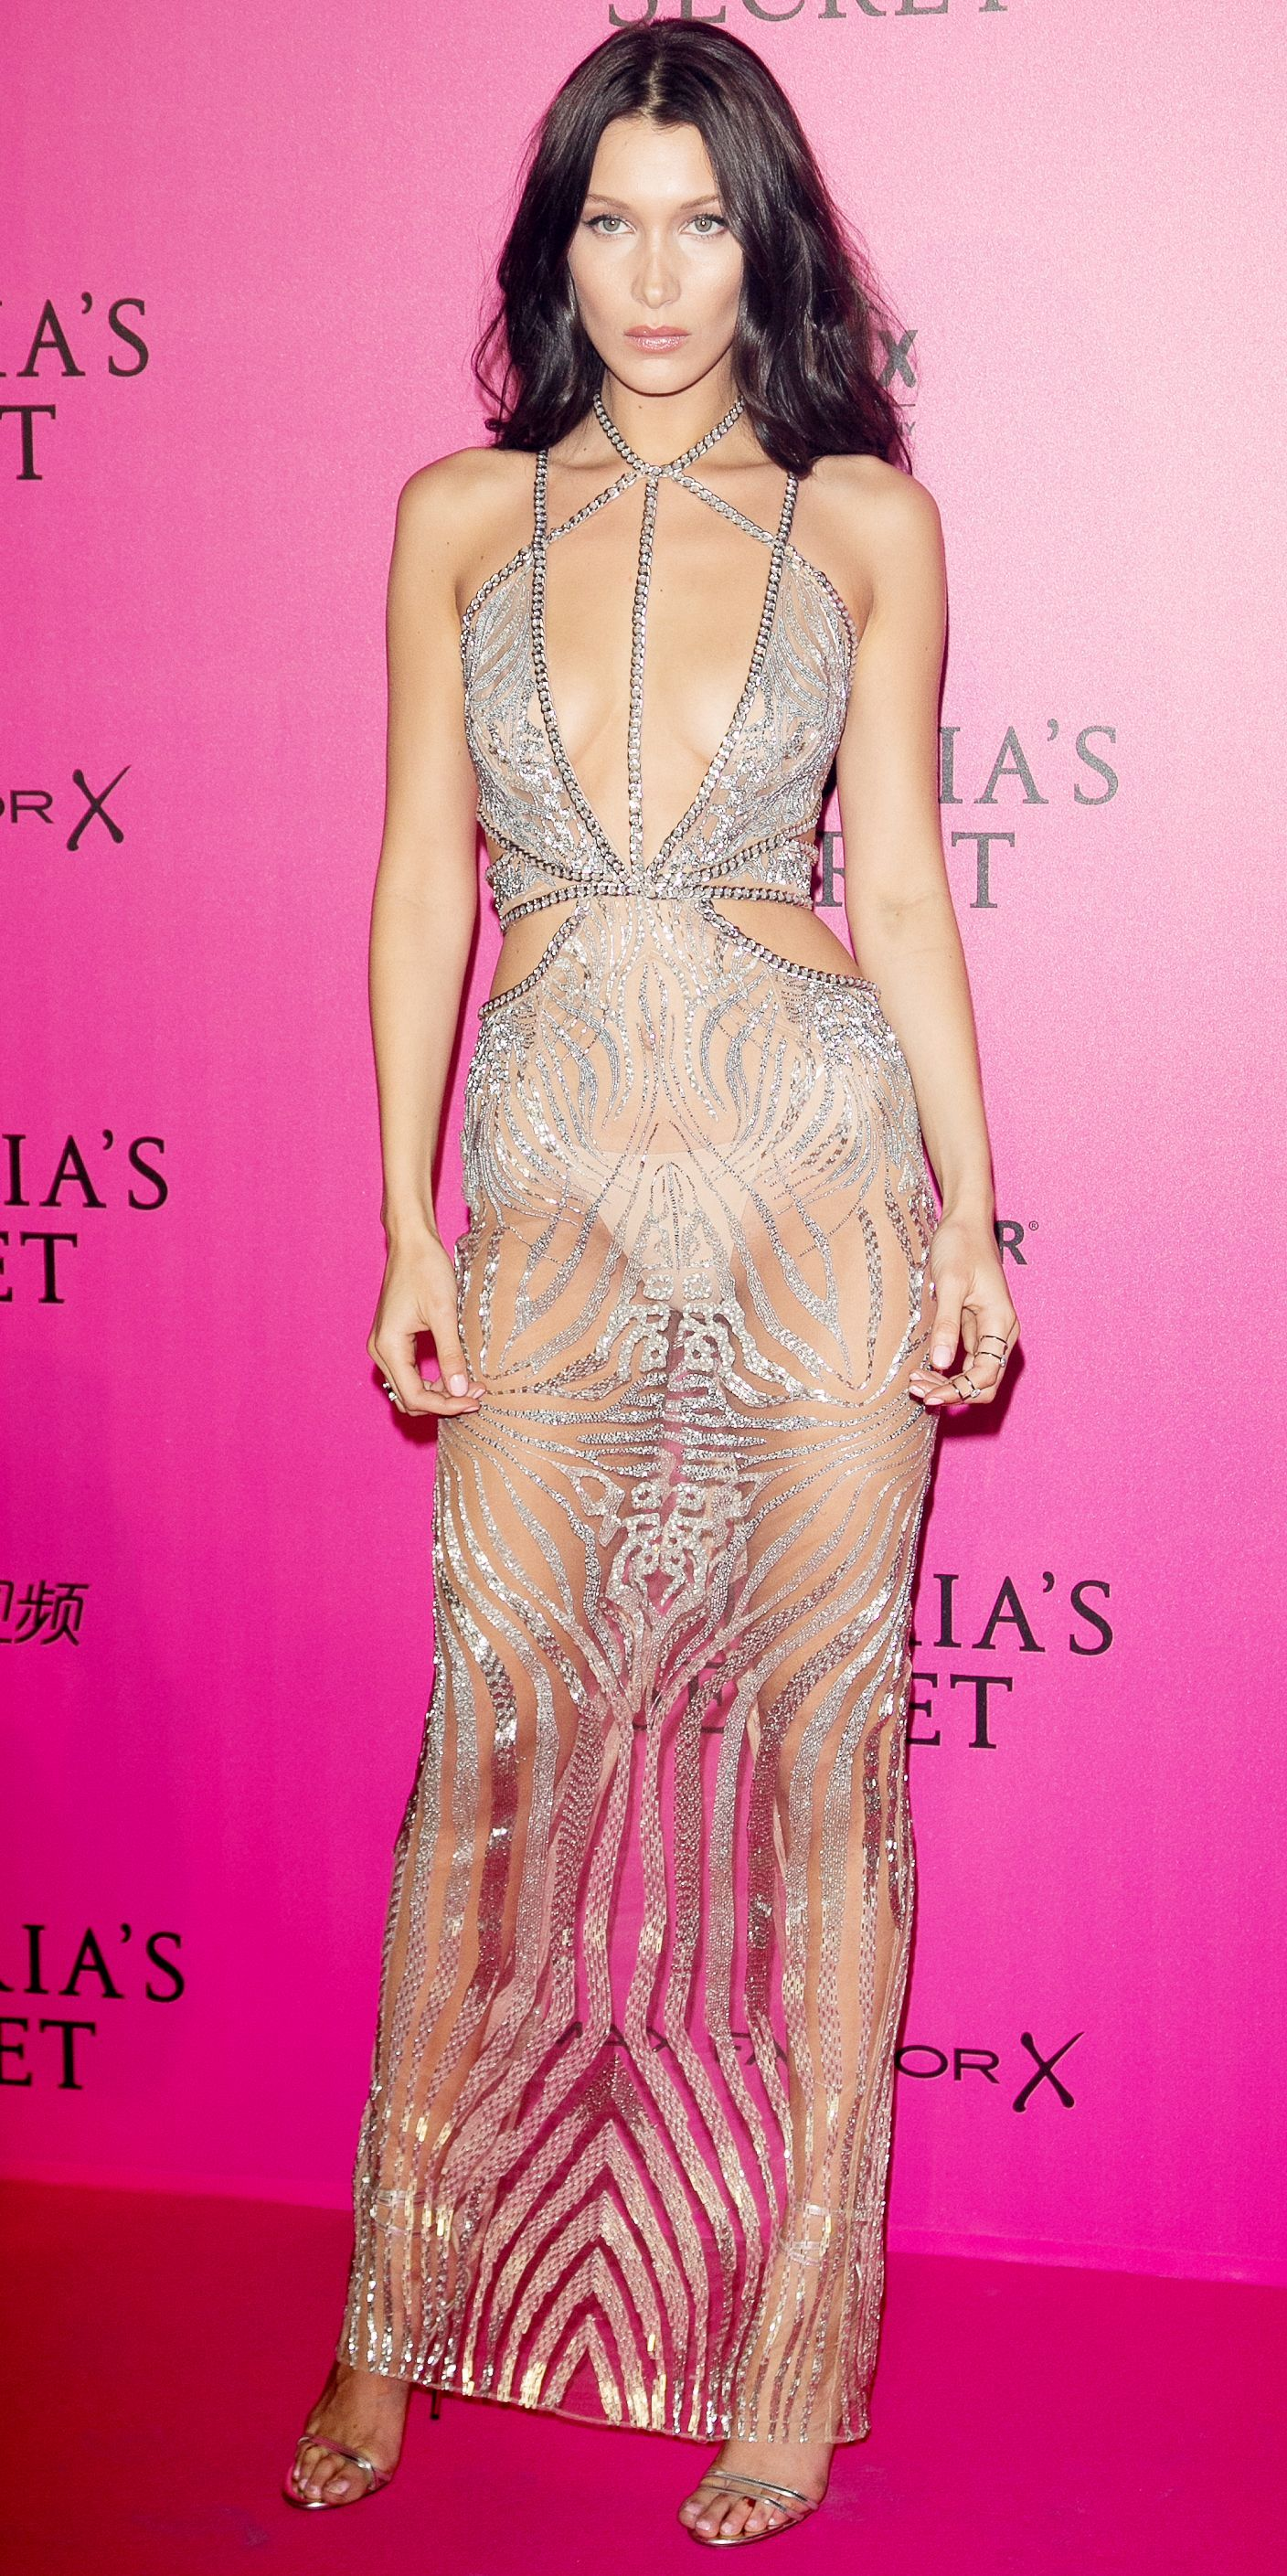 43f4b804df 15 Jaw-Dropping Looks from the Victoria s Secret Fashion Show After-Party - Bella  Hadid from InStyle.com  FashionShow